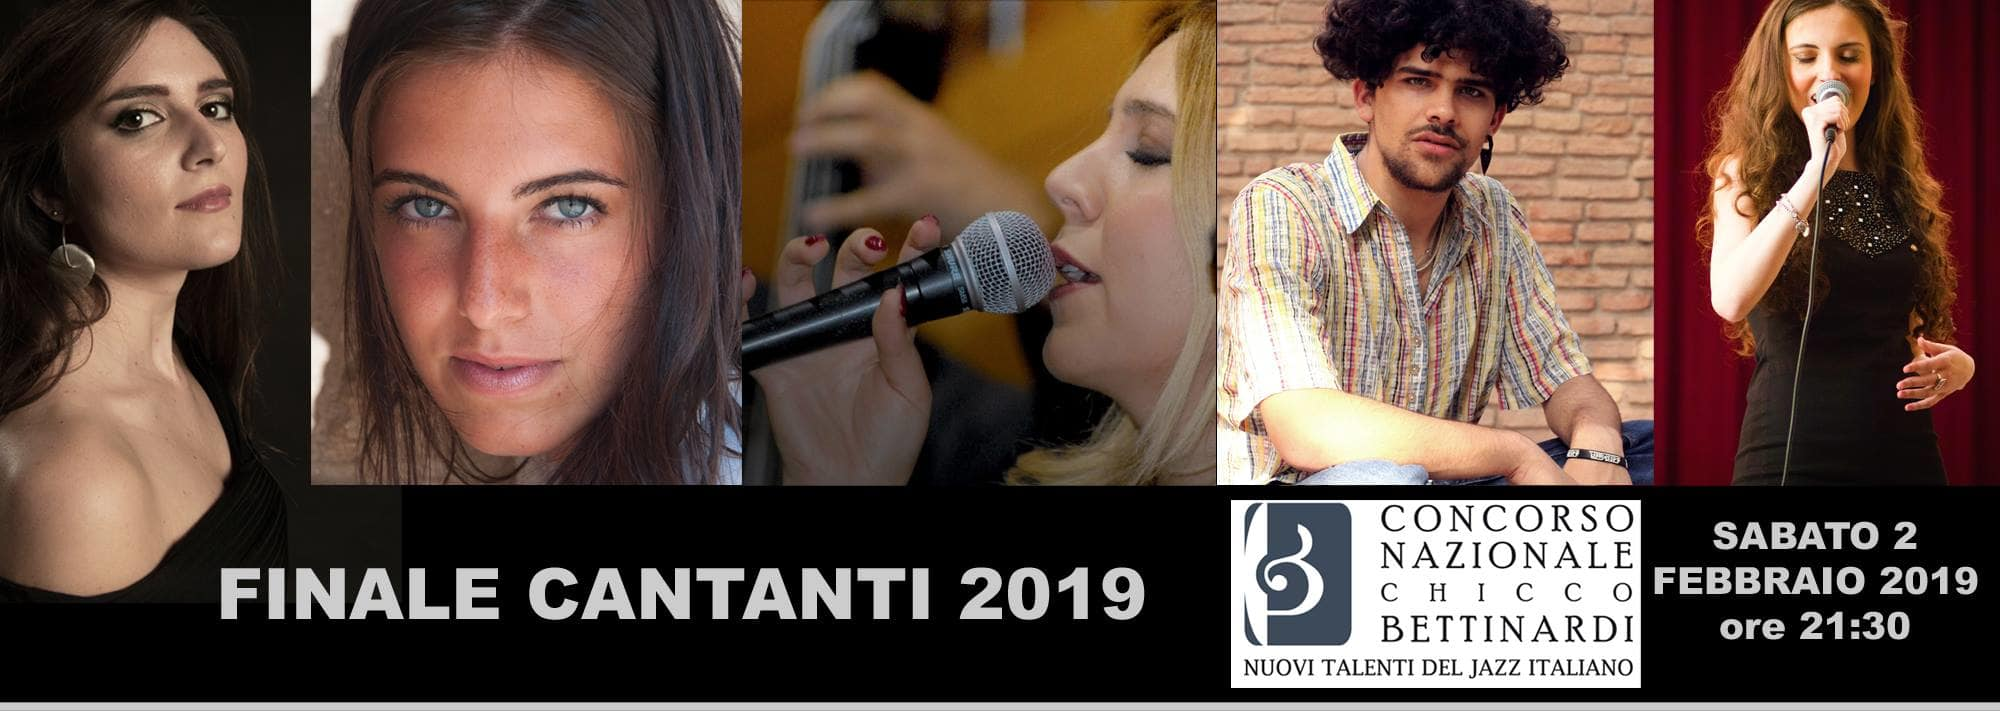 finalisti Bettinardi 2019_cantanti-2